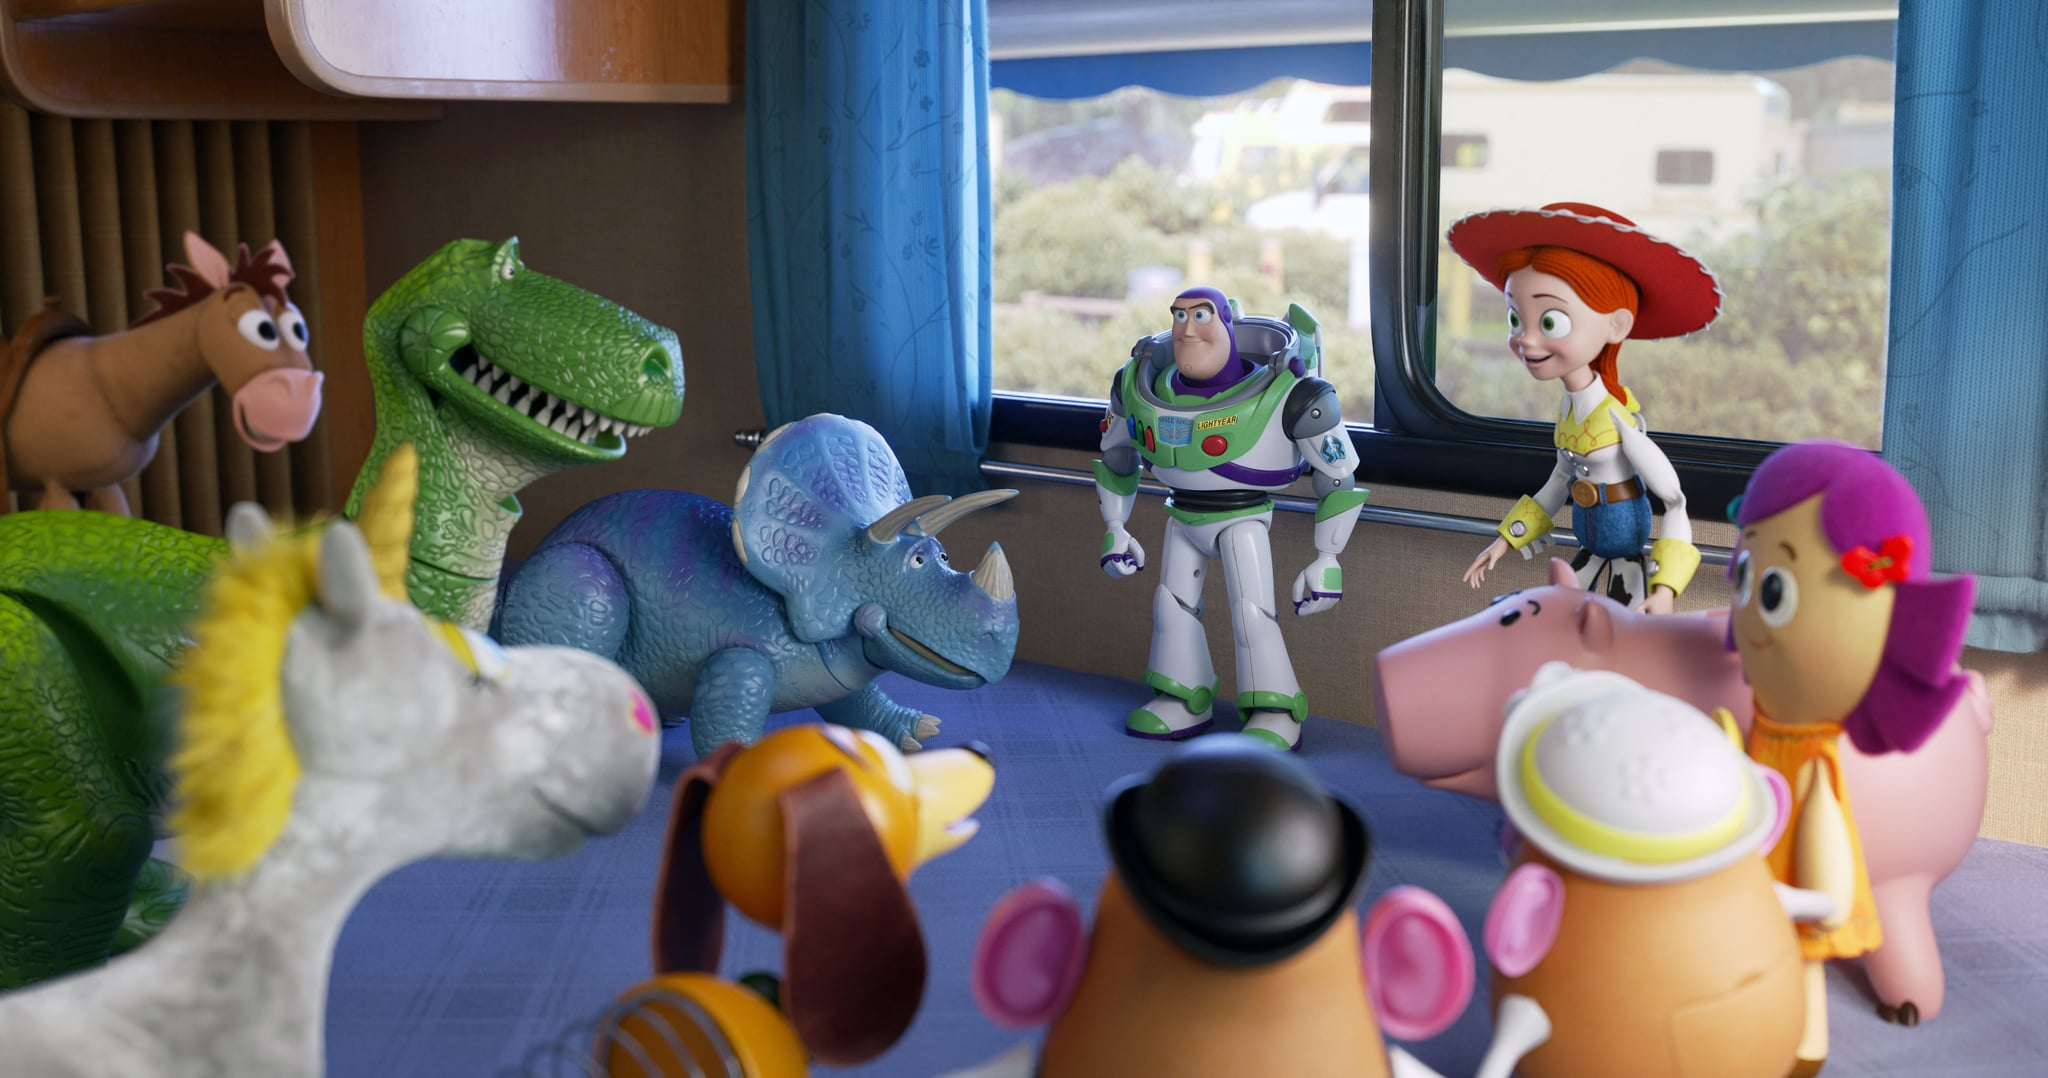 TOY STORY 4, rear from left: Bullseye, Rex (W. Shawn), Trixie (K. Schaal), Buzz Lightyear (T. Allen), Jessie (J. Cusack), Hamm (J. Ratzenberger), Dolly (B. Hunt), 2019.  Walt Disney Studios Motion Pictures / courtesy Everett Collection